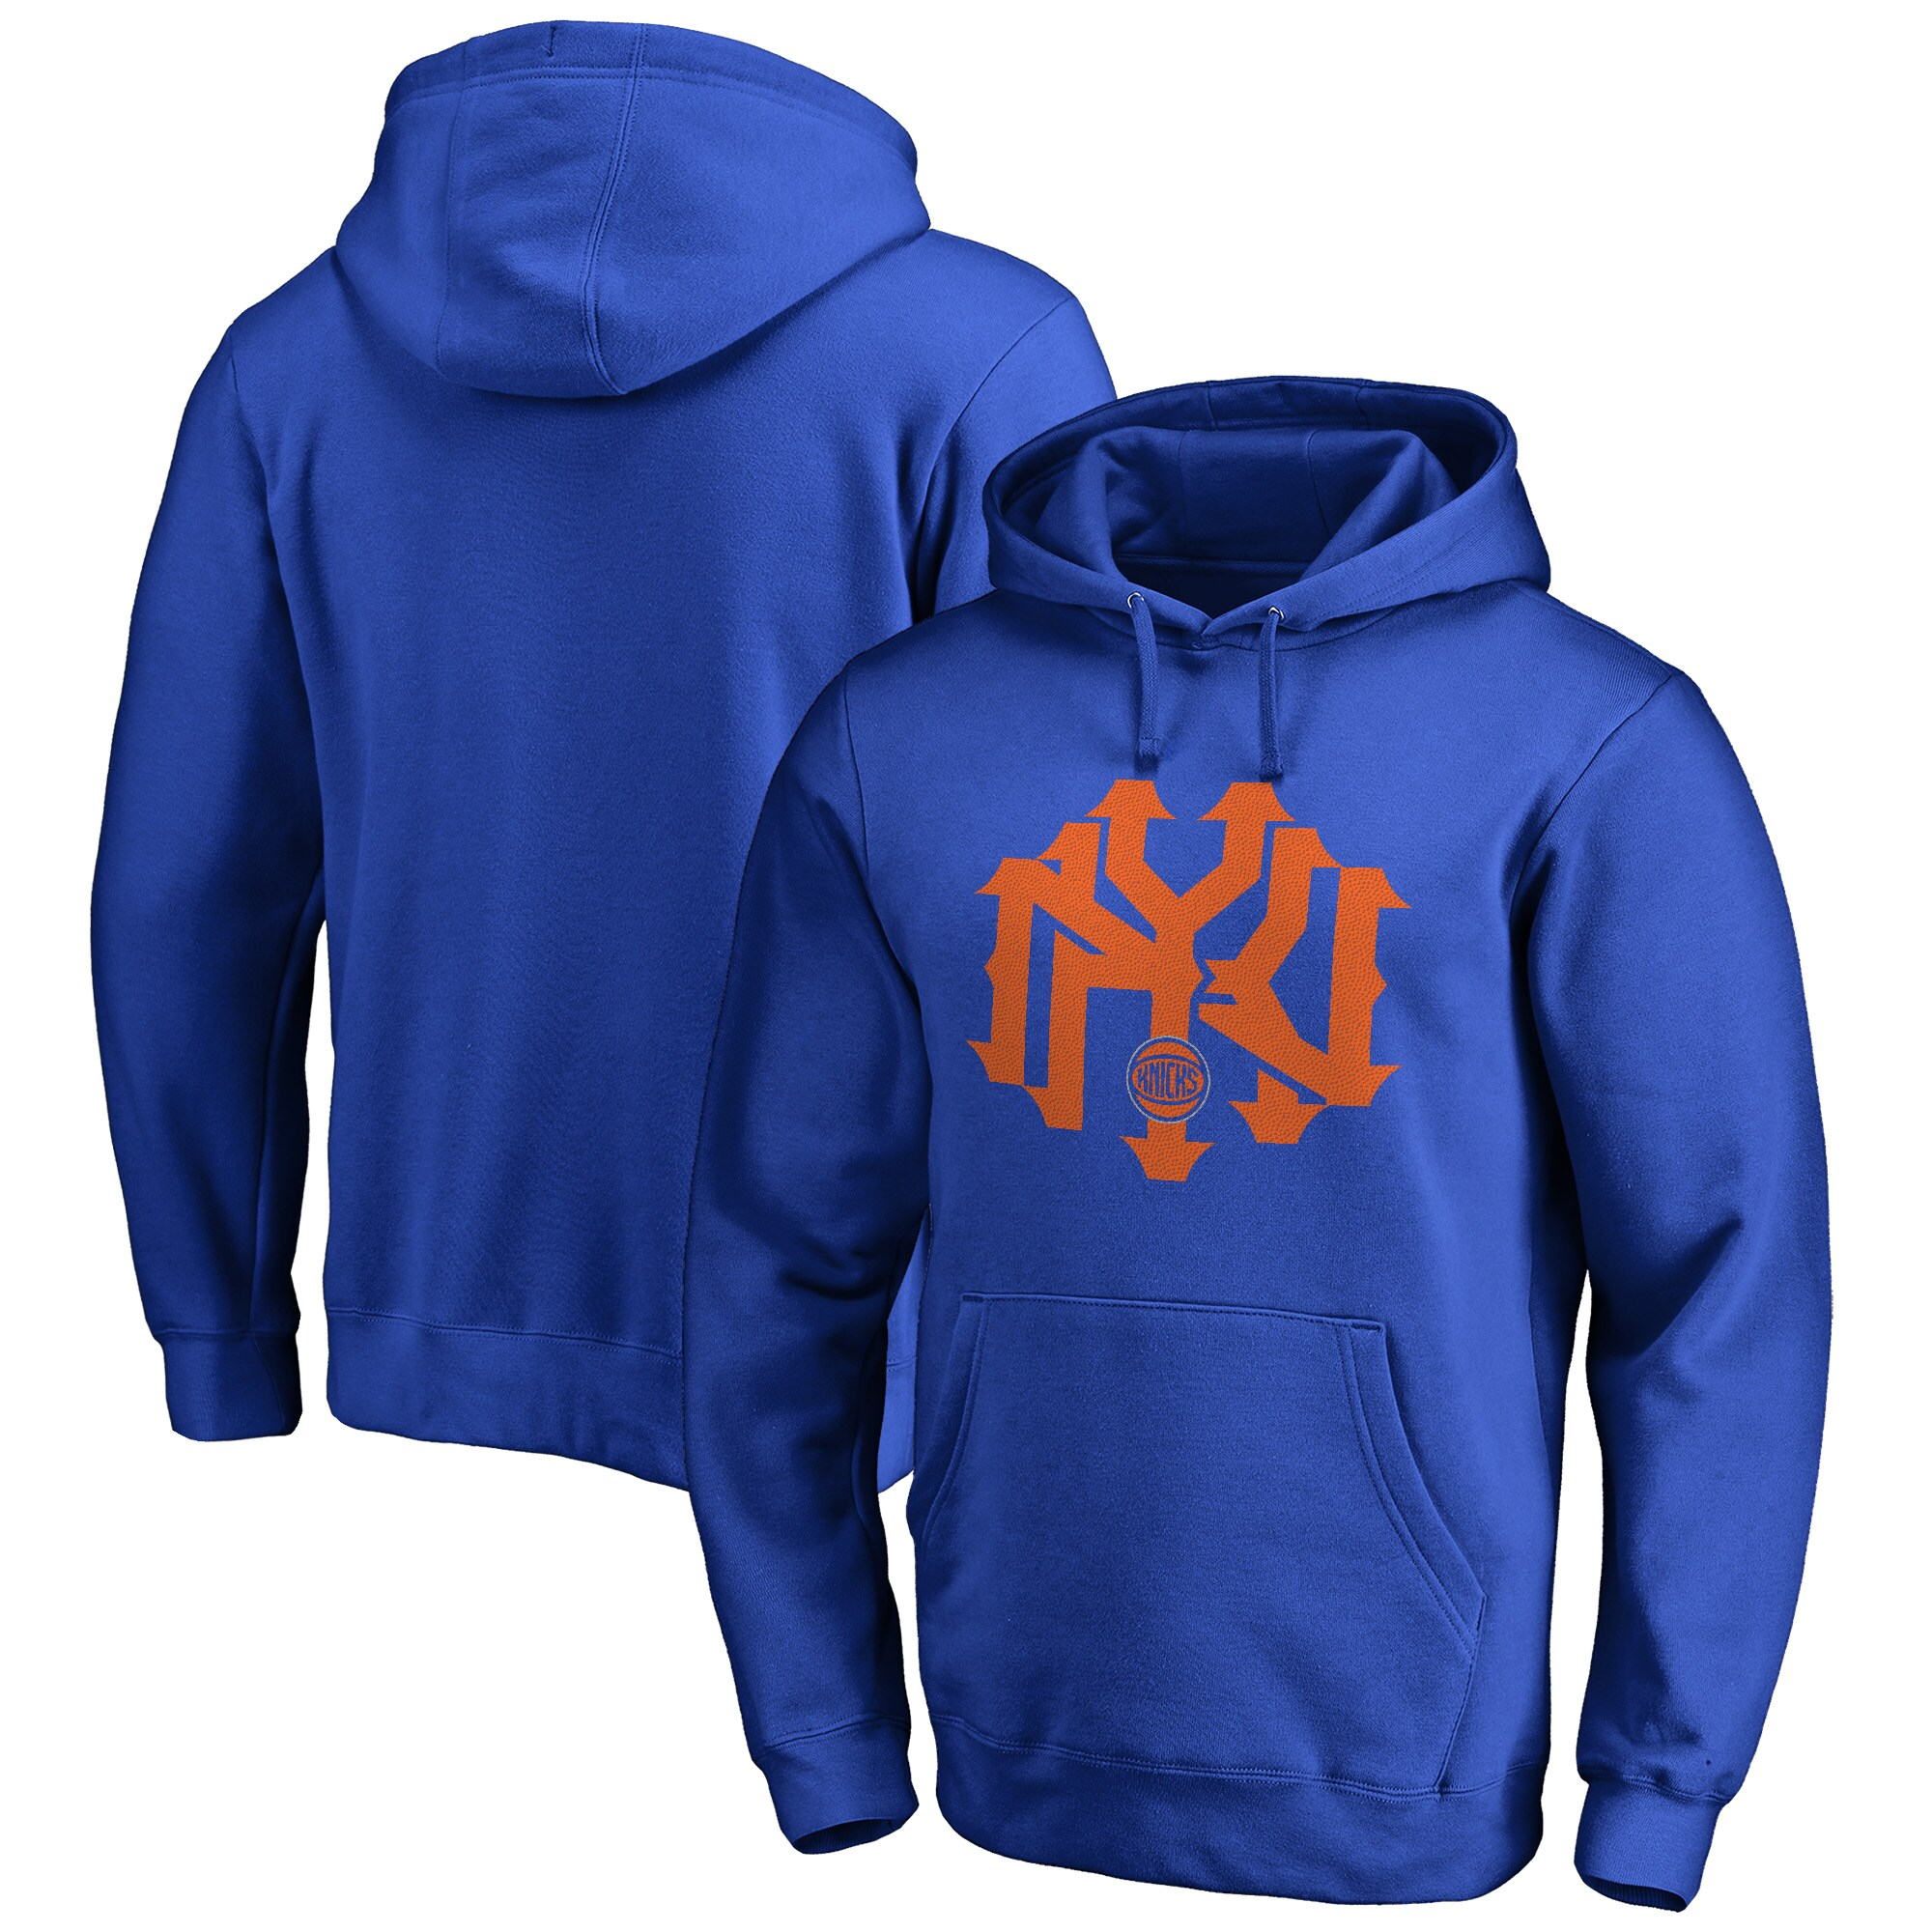 New York Knicks Fanatics Branded Big & Tall Ligature Hometown Collection Pullover Hoodie - Royal